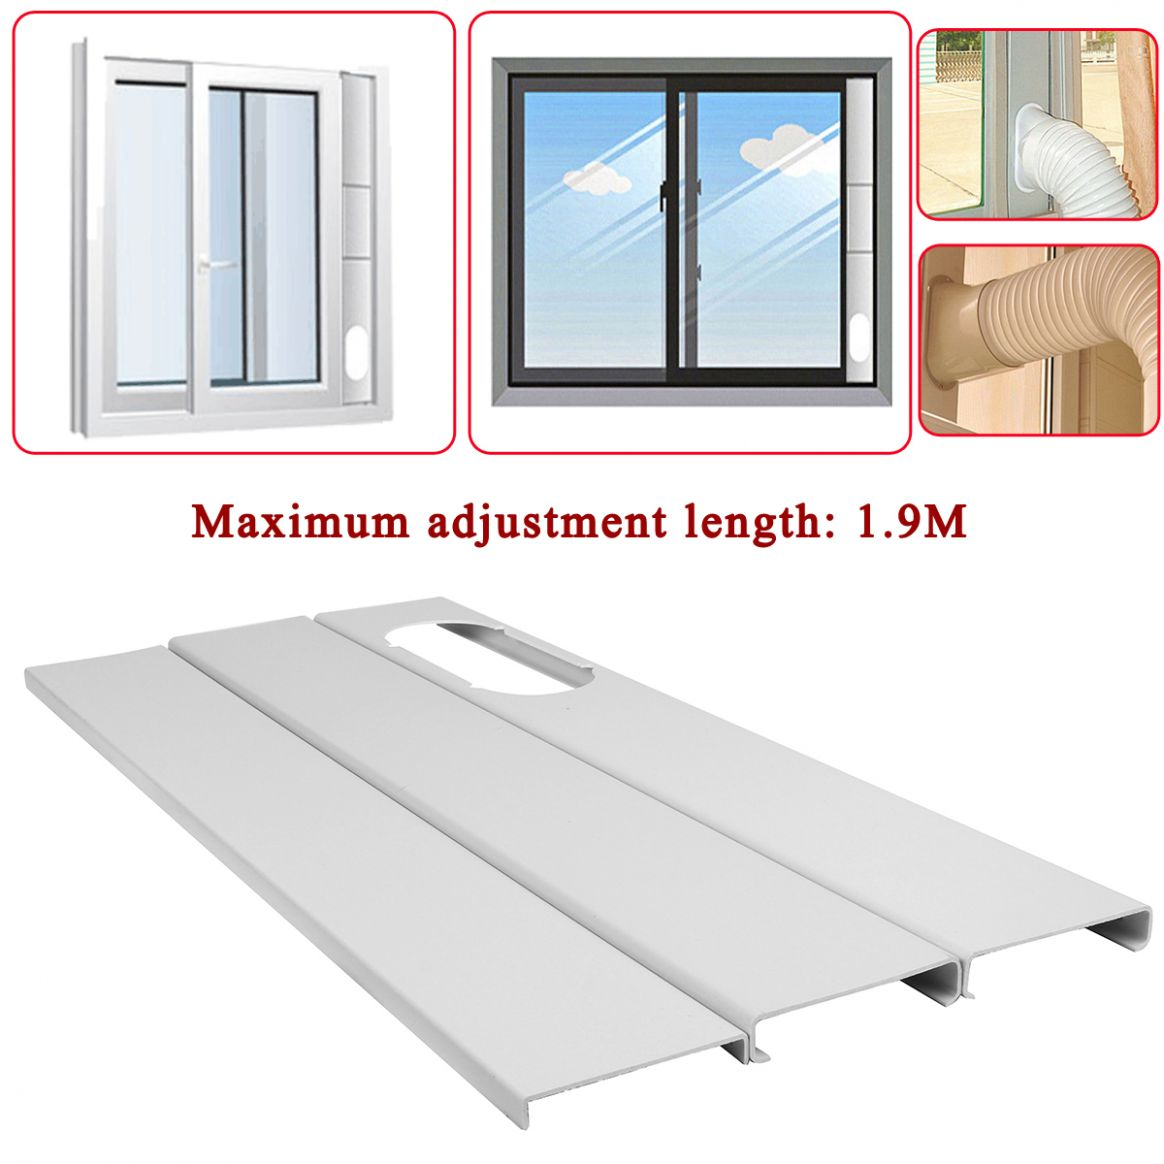 8Pcs Adjustable 8.8M Air Conditioner Window Slide Plate Exhaust ..